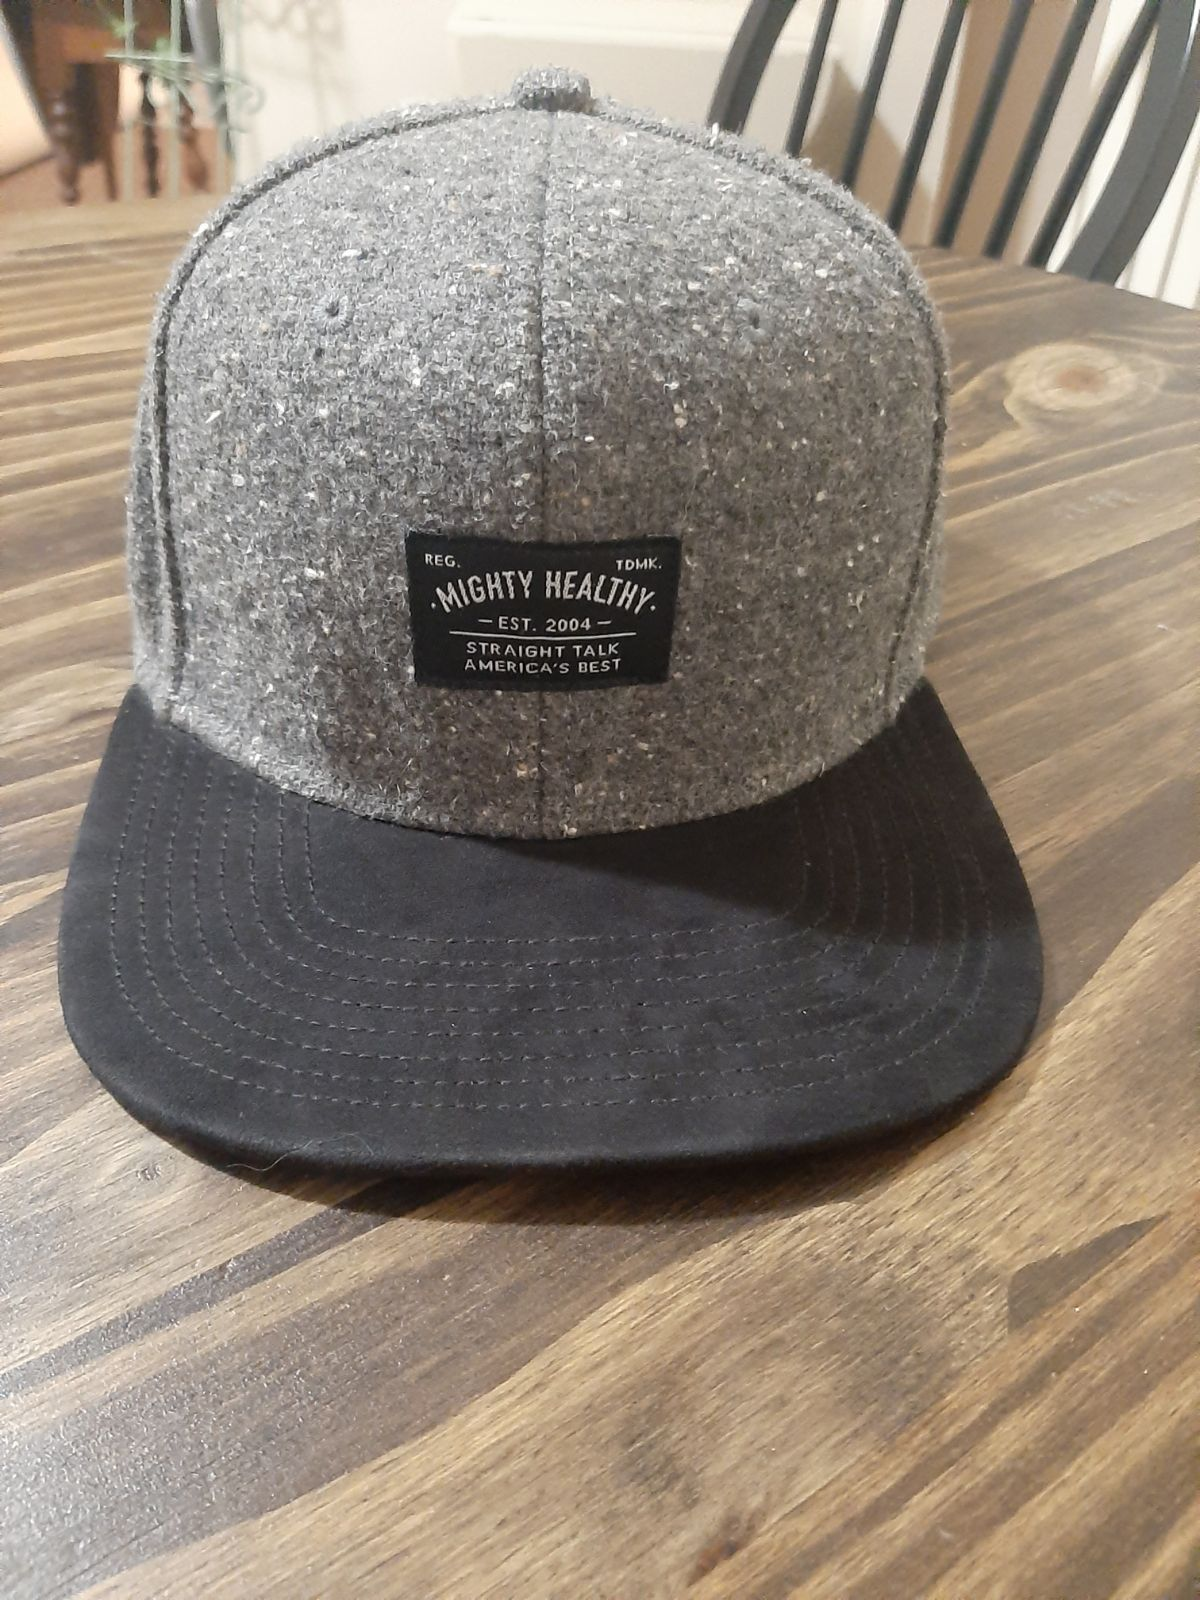 Mighty Healthy snap back hat